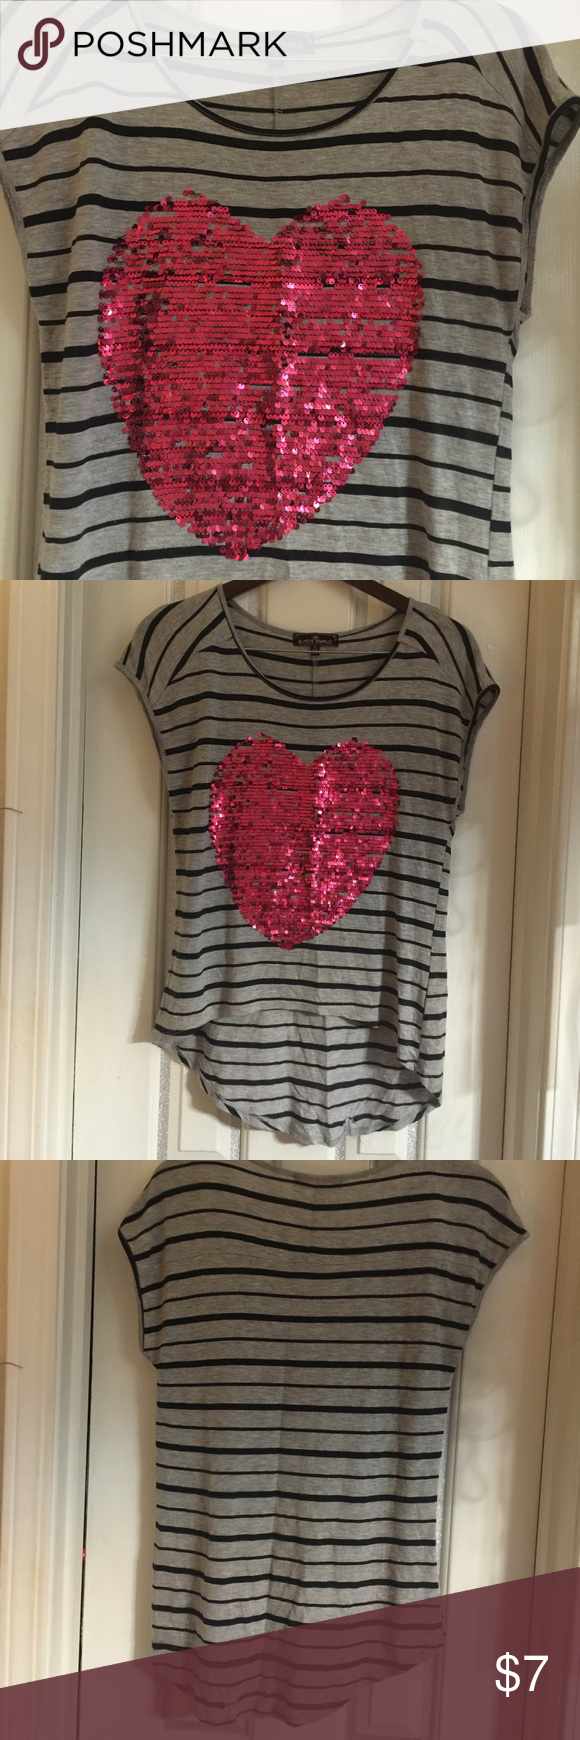 Be Still My Heart Almost Famous Sequined Heart Shirt. Size Small. Almost Famous Tops Blouses